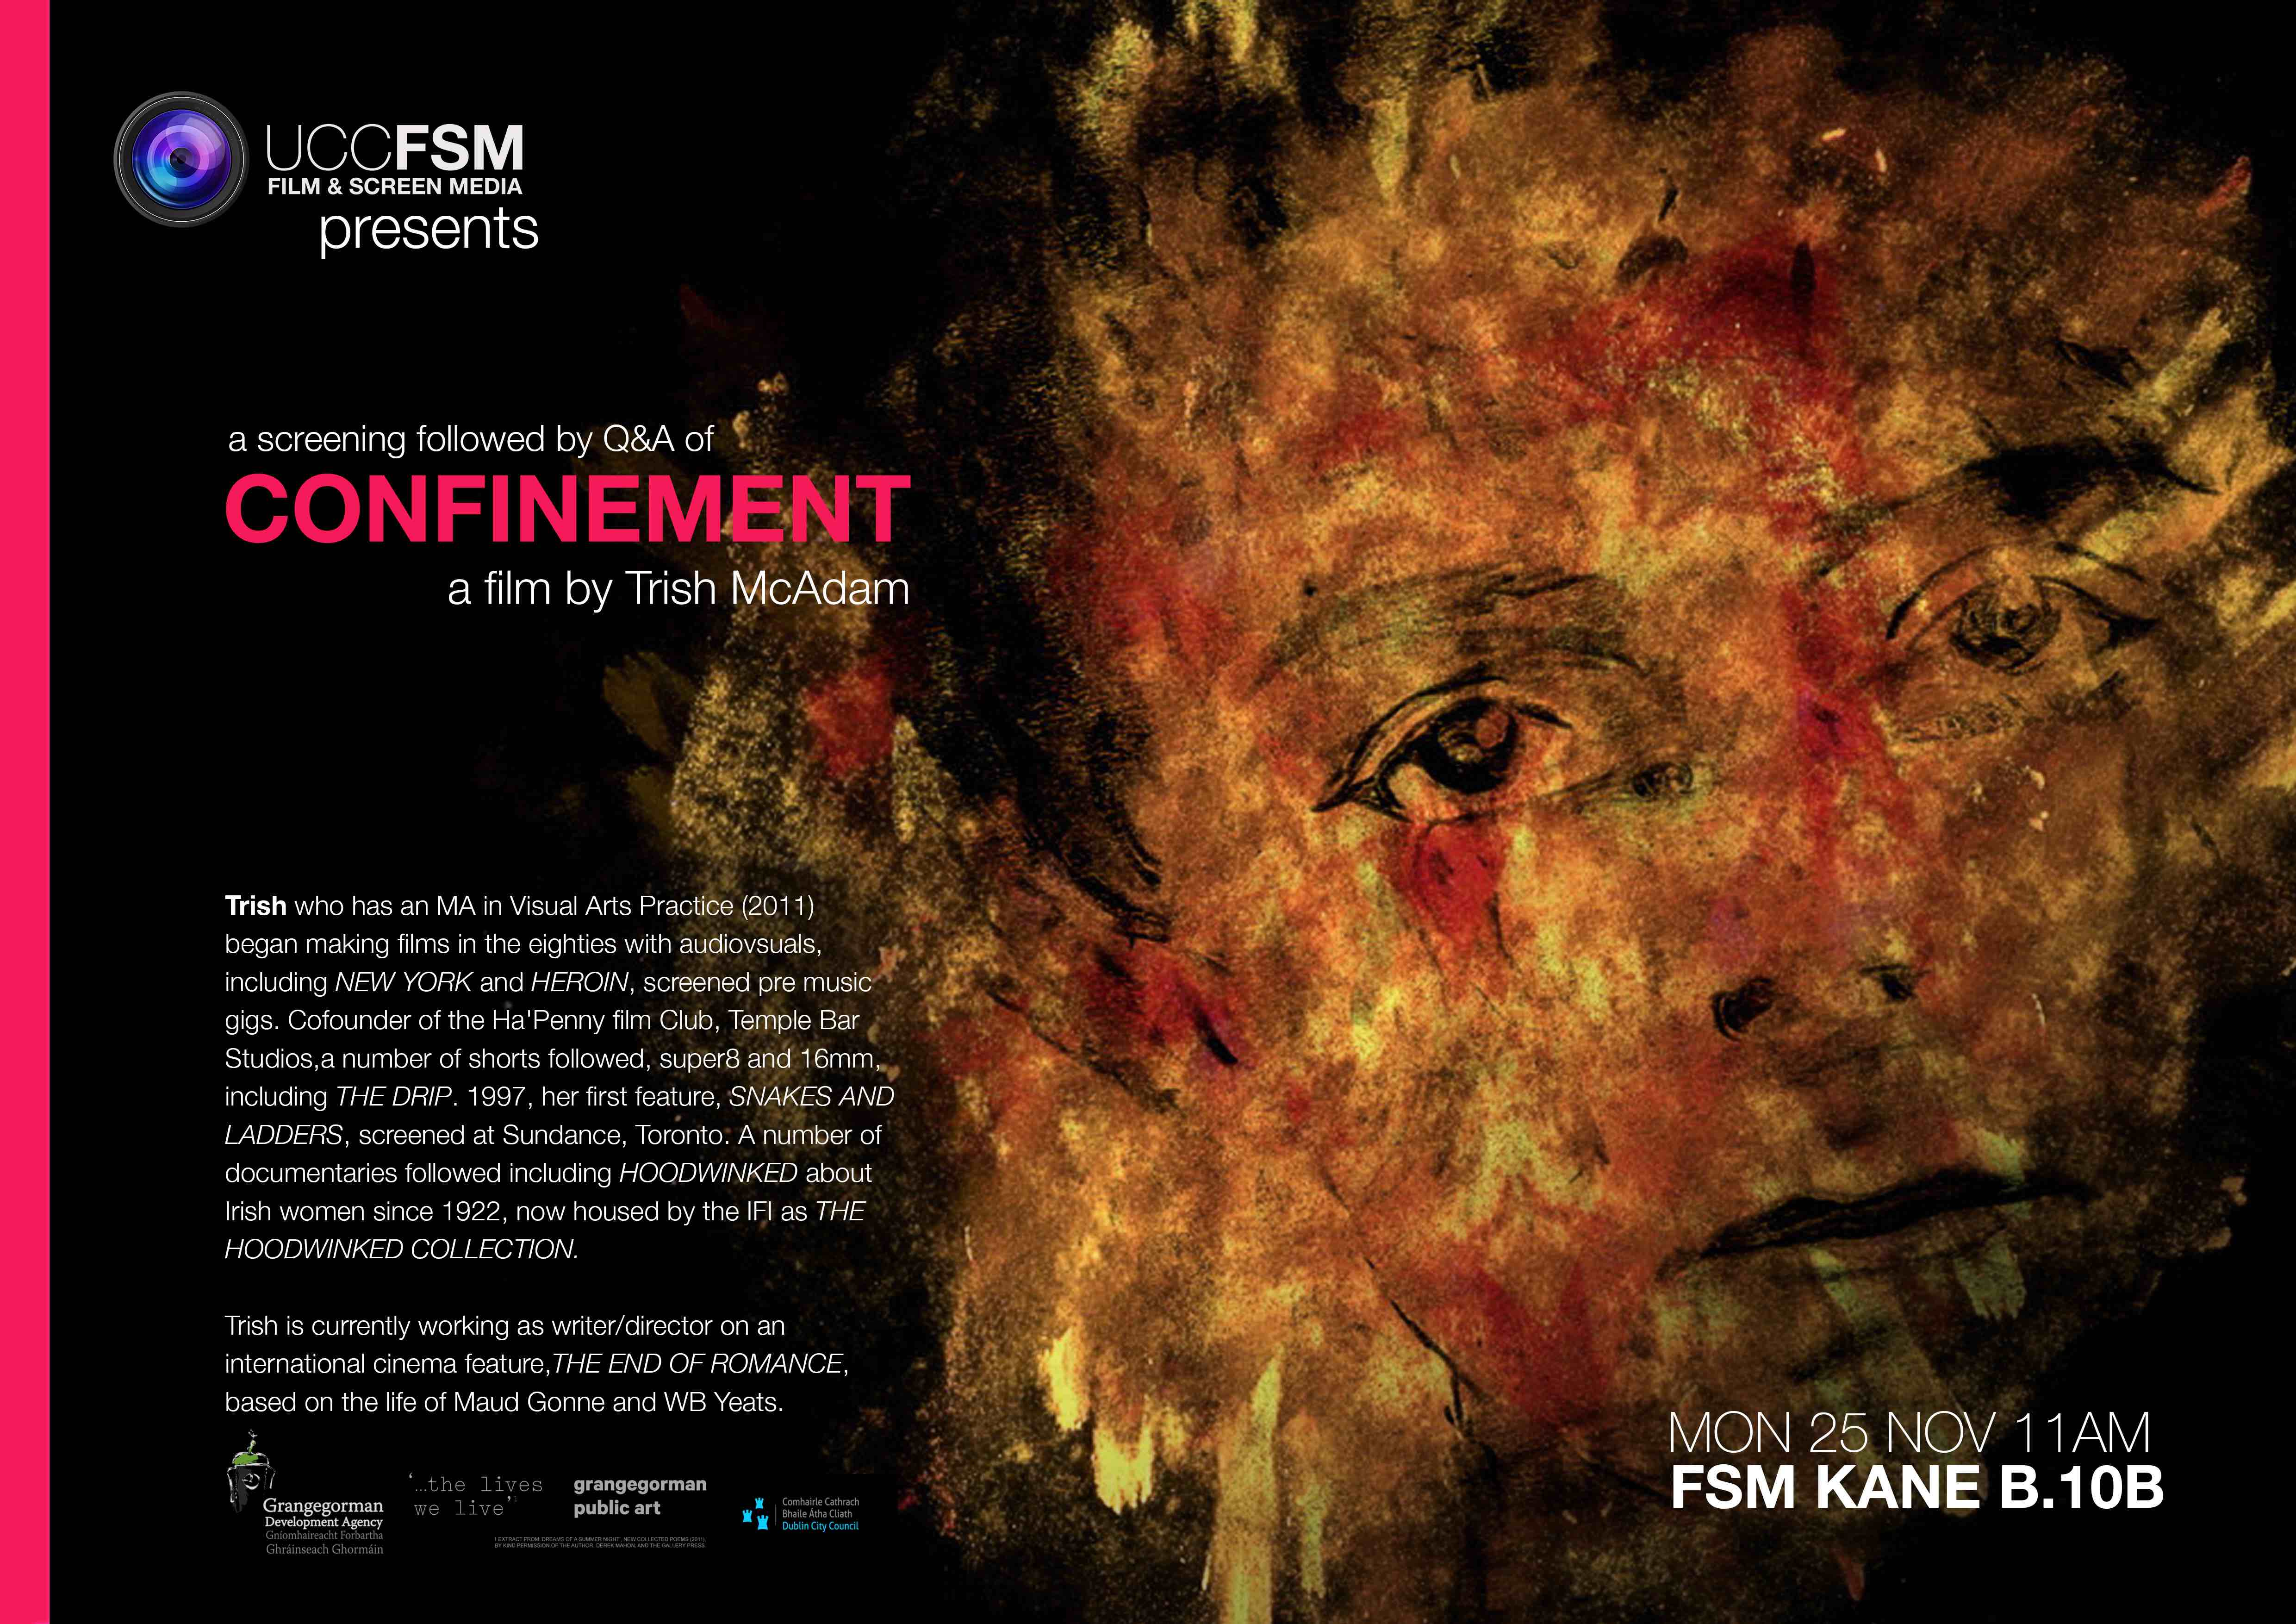 CONFINEMENT a short film by Trish McAdam - A TIMESPACE MAP. Mon 25 Nov @11am.